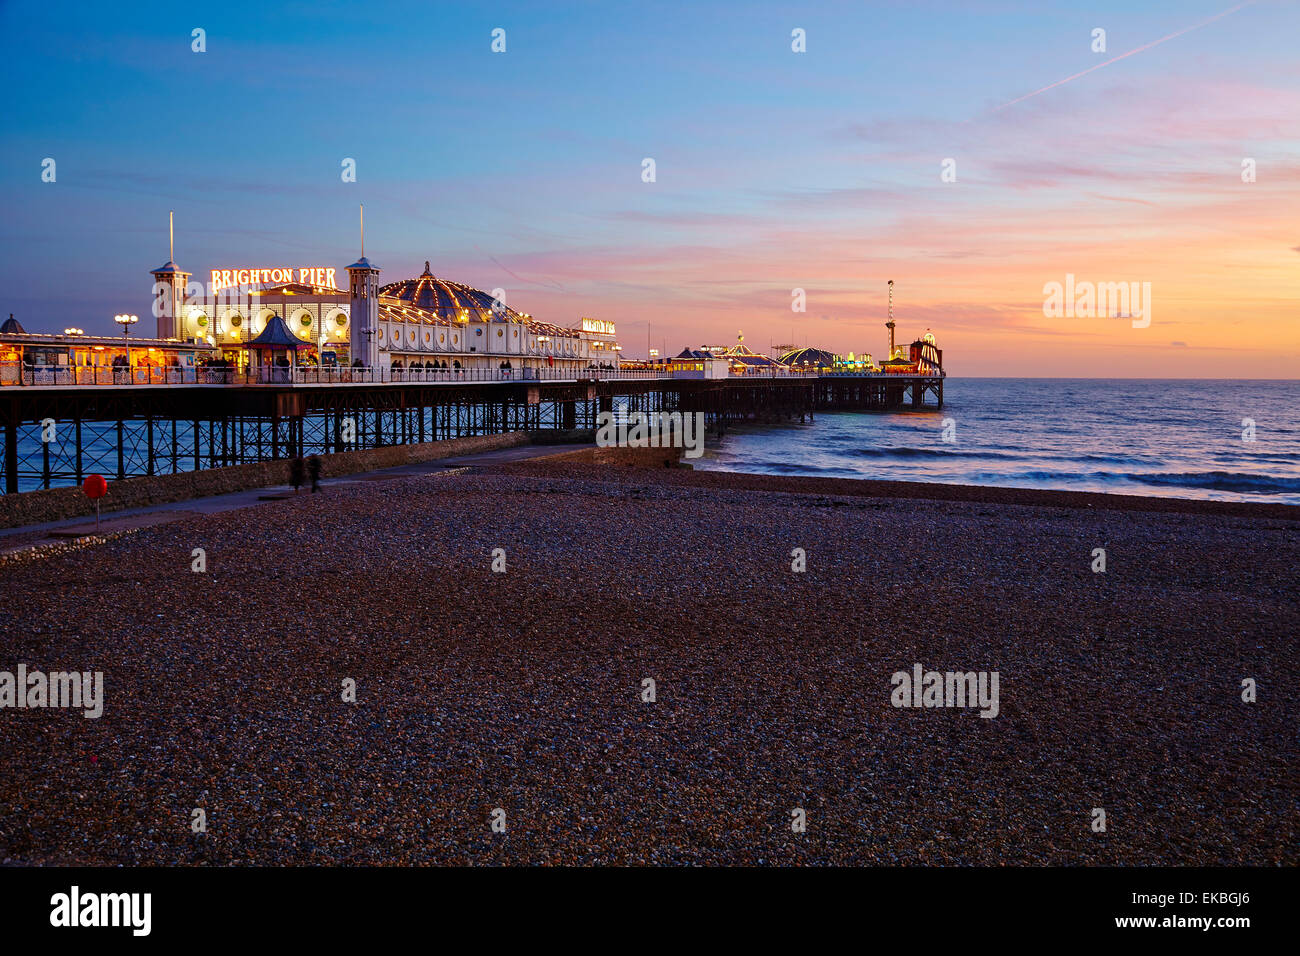 Brighton Pier, Brighton, Sussex, England, United Kingdom, Europe - Stock Image